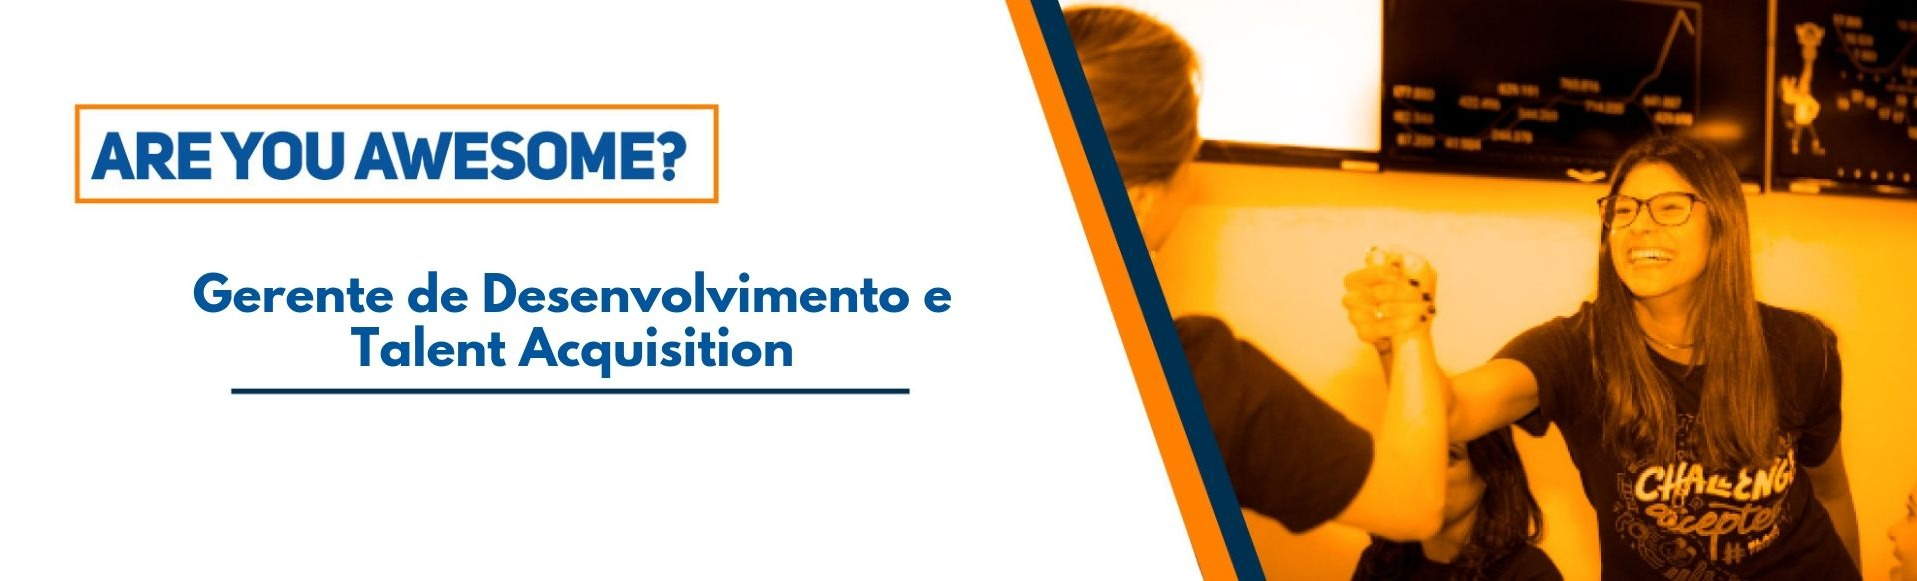 Gerente de Desenvolvimento e Talent Acquisition